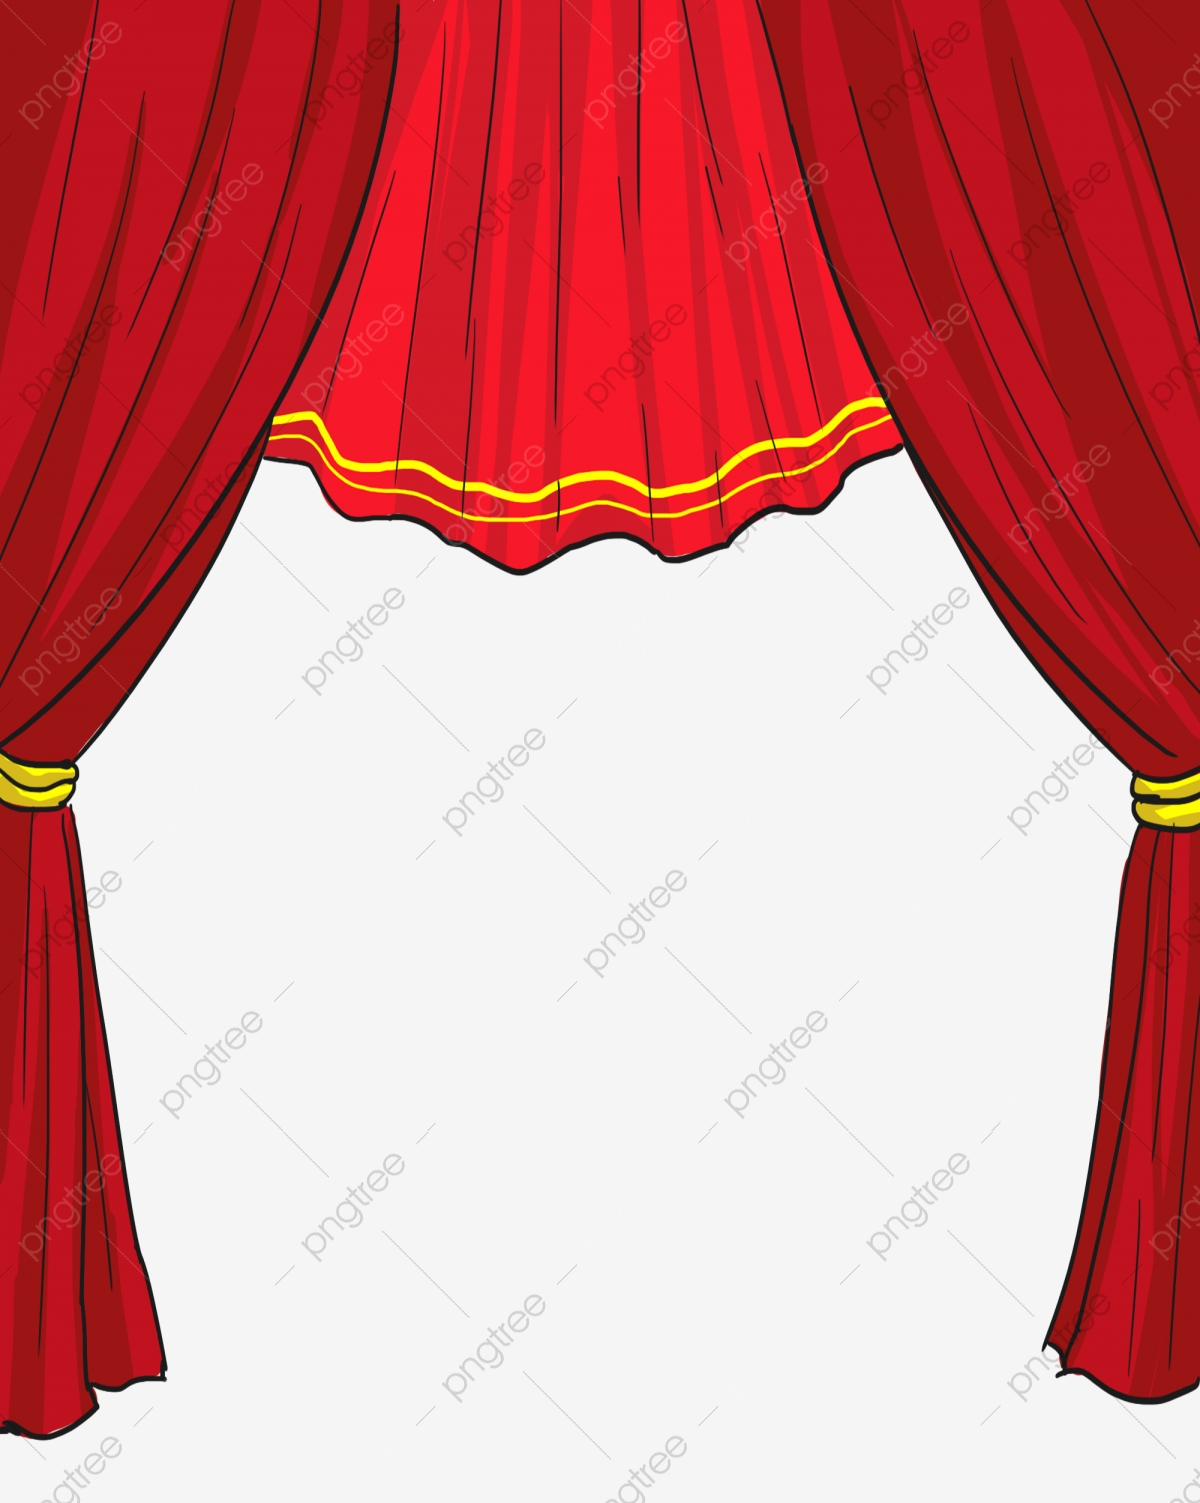 Curtains clipart empty stage. Curtain red decoration png